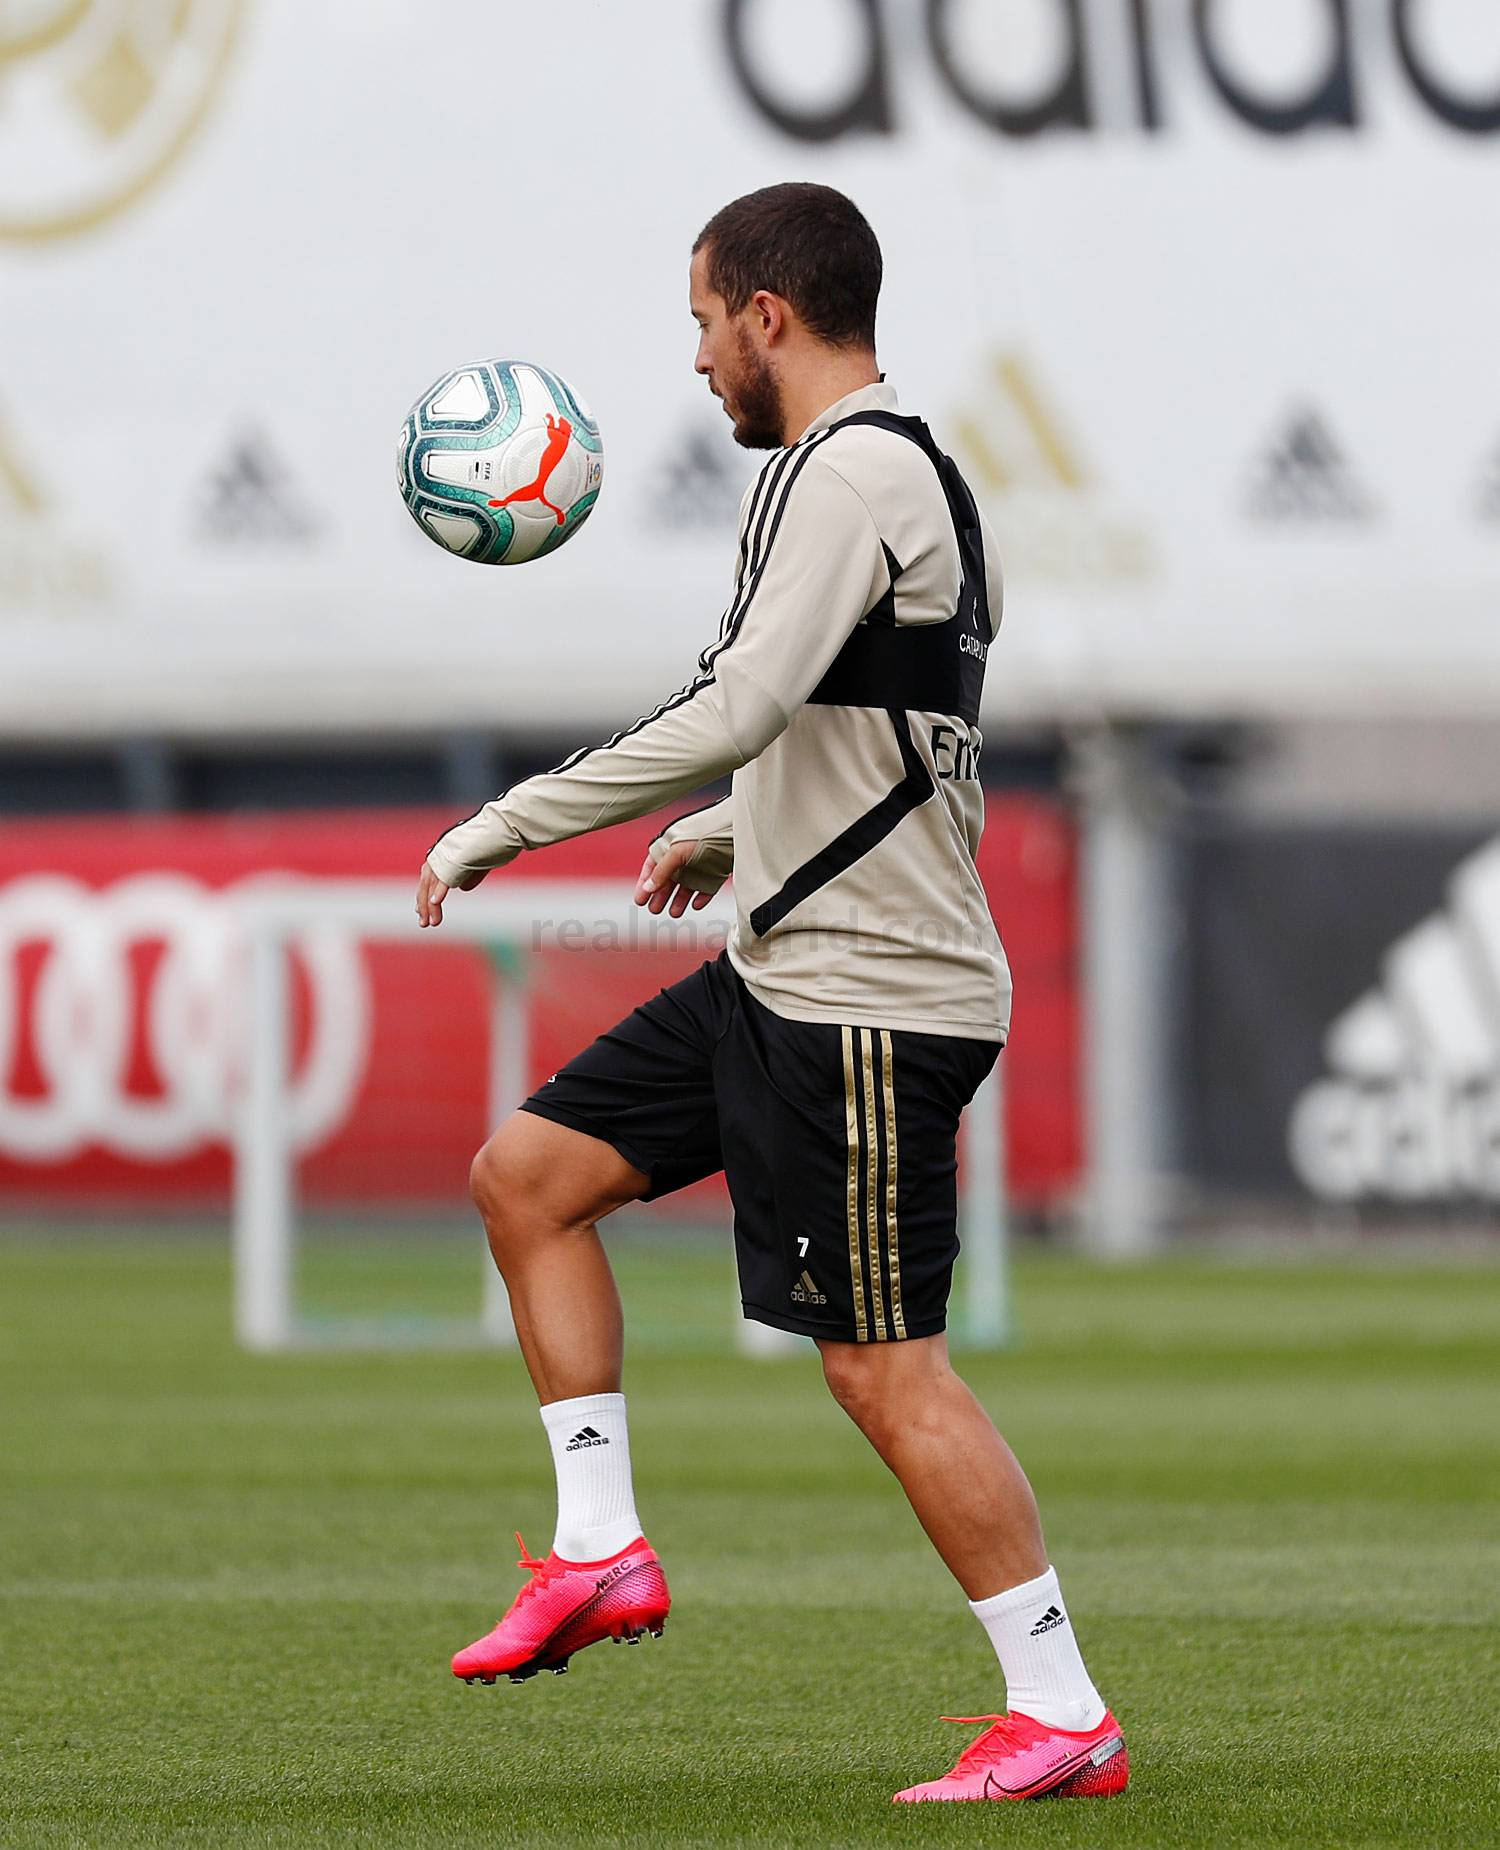 Real Madrid - Entrenamiento del Real Madrid  - 11-05-2020